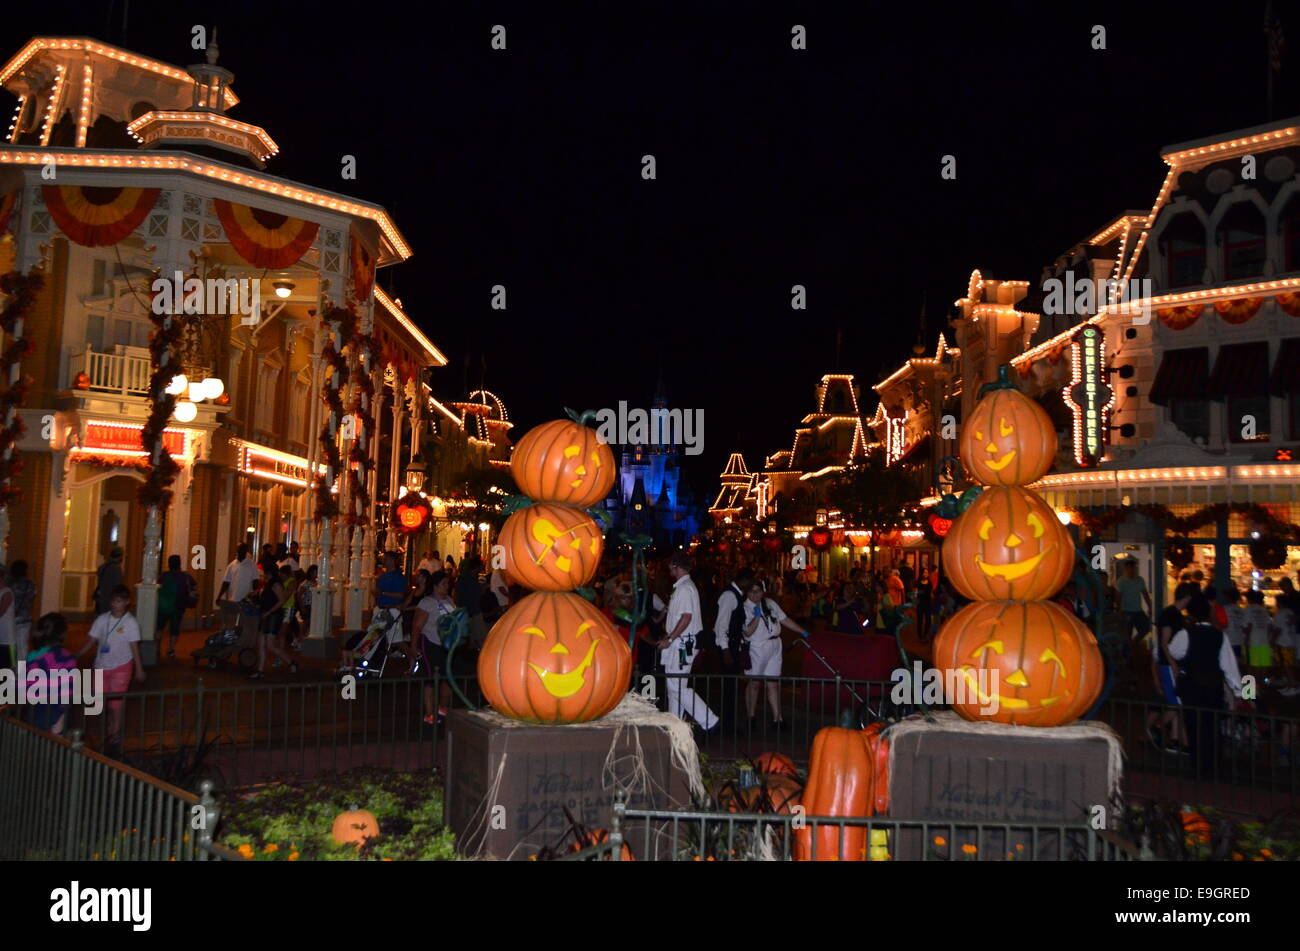 pumpkin decorations for halloween at disneys magic kingdomorlando florida